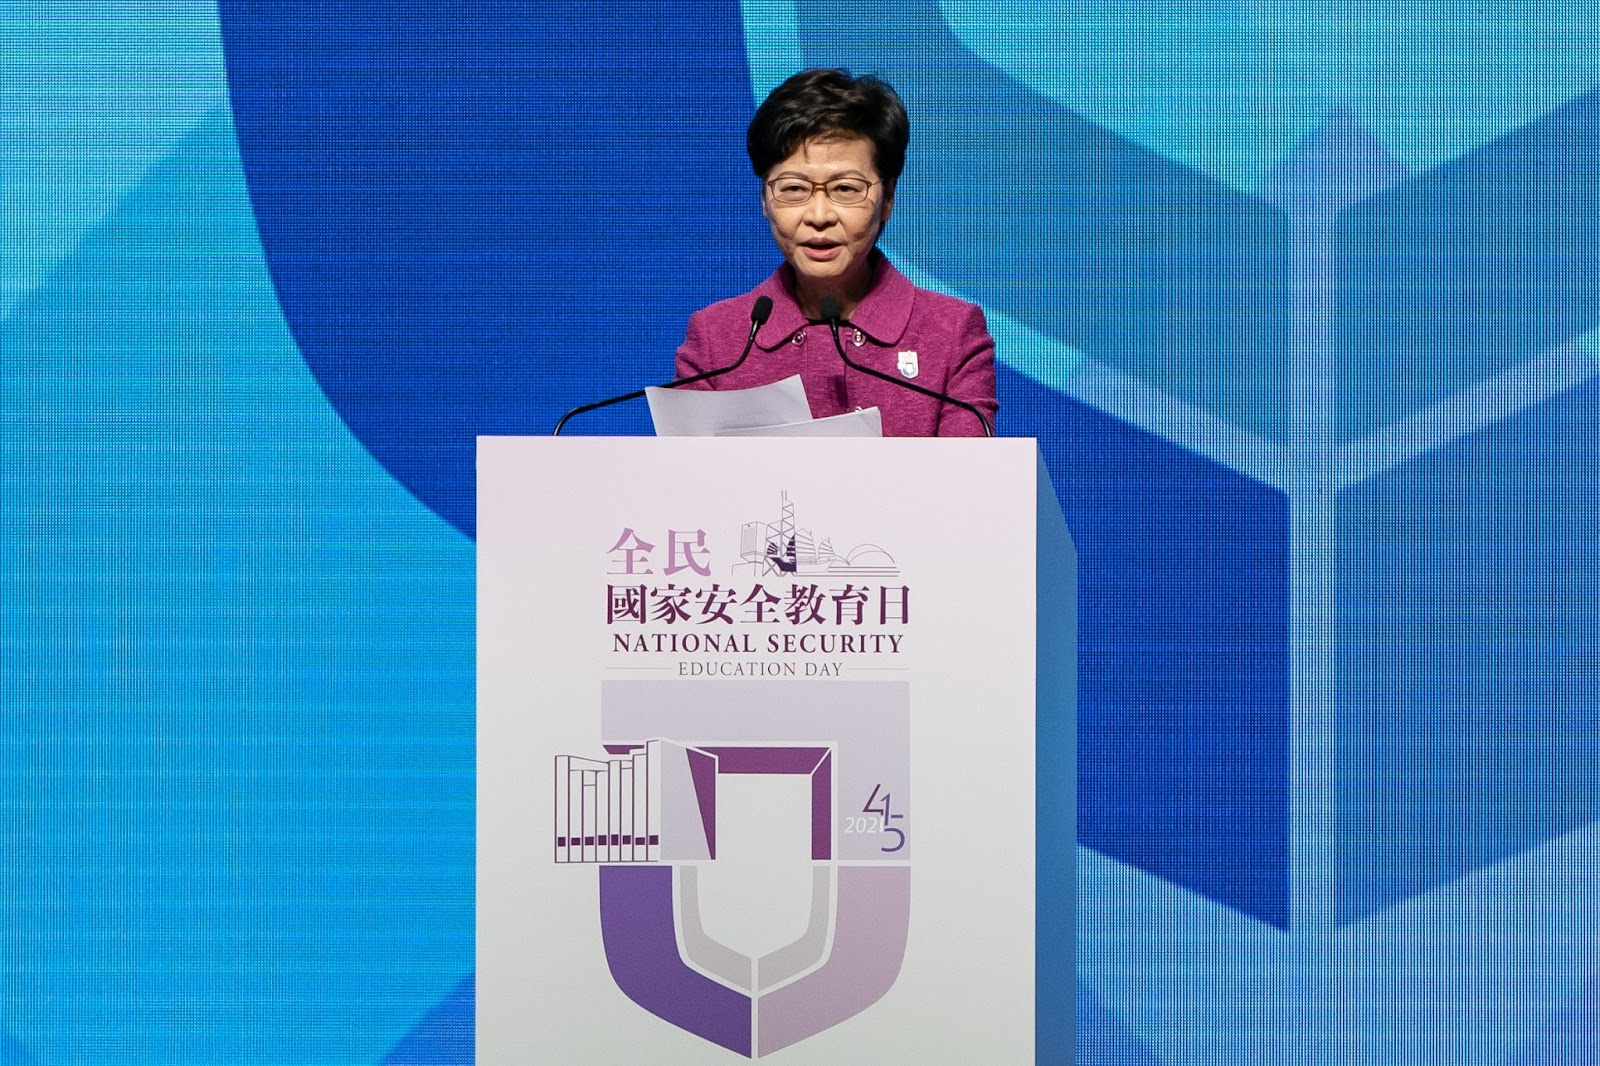 Hong Kong Chief Executive Carrie Lam delivers a speech during the National Security Education Day Opening Ceremony at the Hong Kong Convention Centre on April 15, 2021 in Hong Kong. With the National Security Law in full force, Hong Kong's democracy is gone and the city now sees its greatest fear in living color: Chinese Communist Party rule.